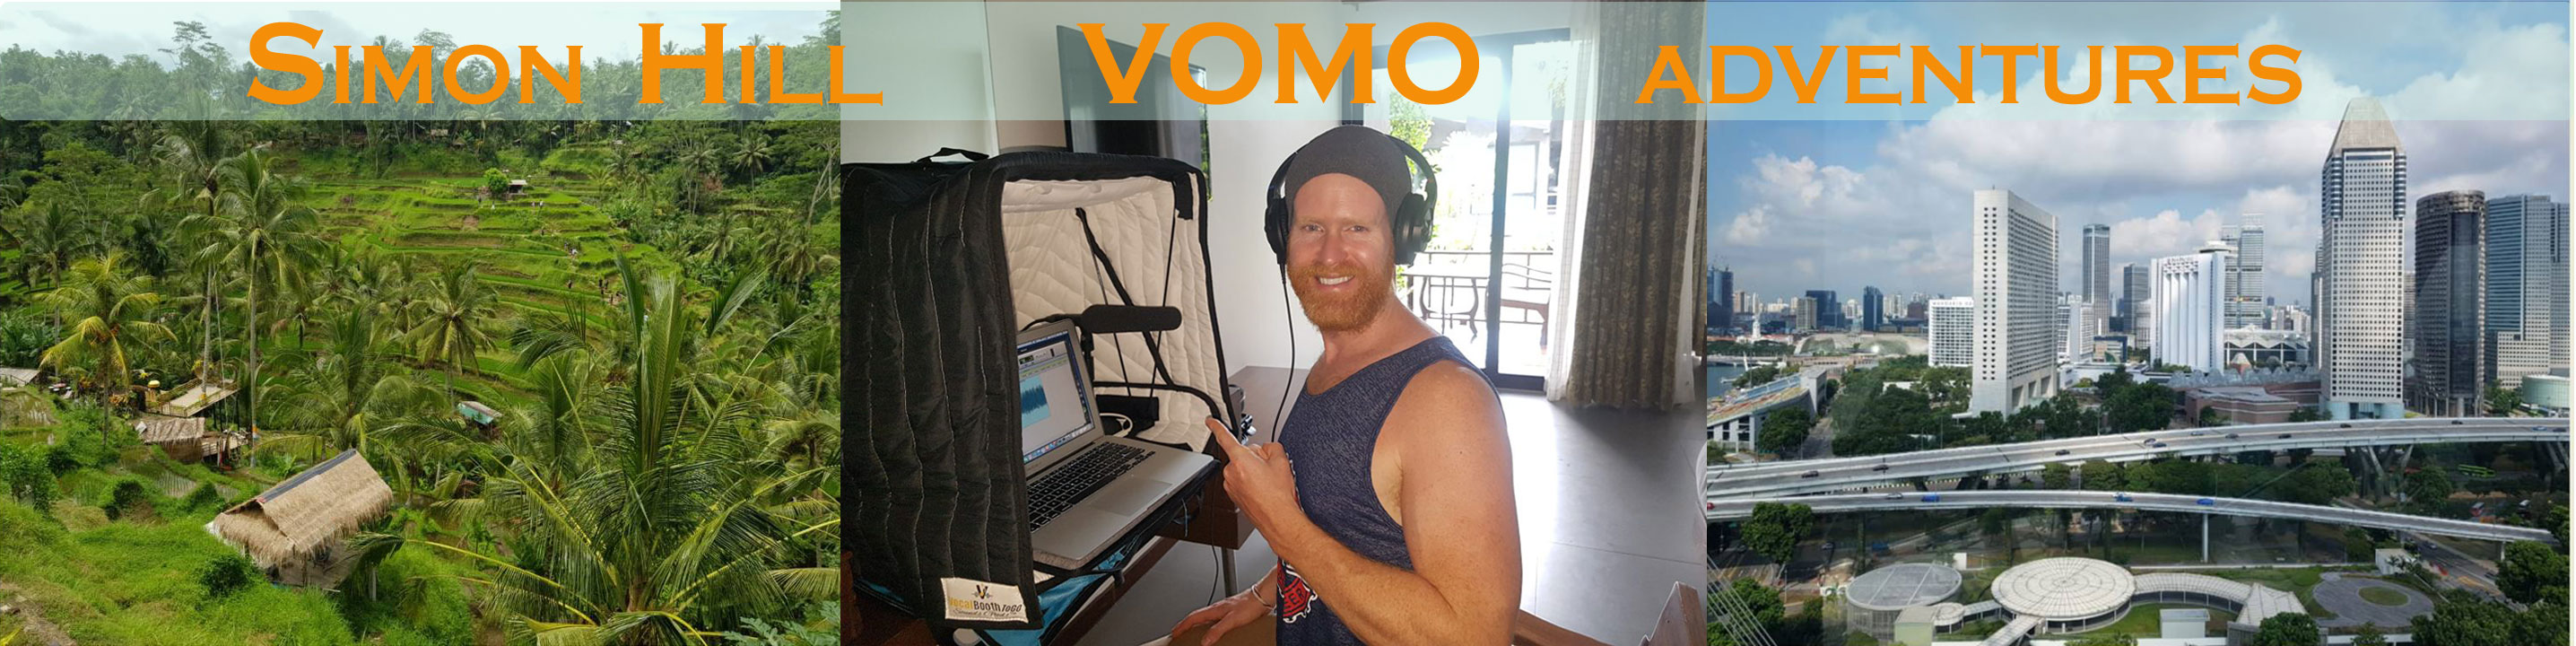 SIMON-HILL-VOMO-adventure